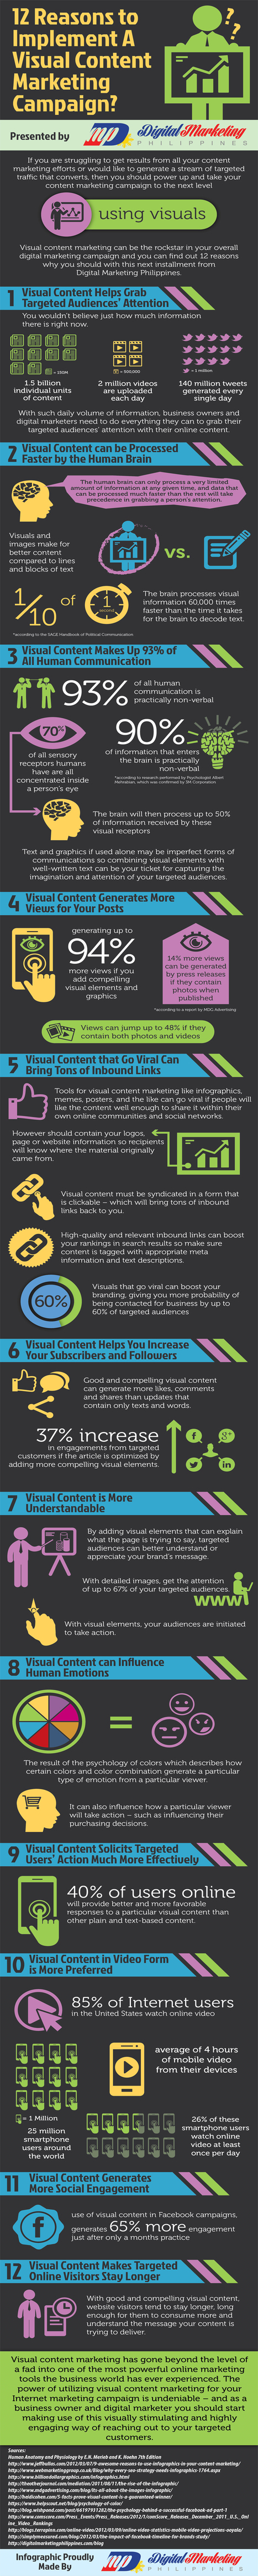 12 Reasons to Implement A Visual Content Marketing Campaign (Infographic) | Panovus | Scoop.it